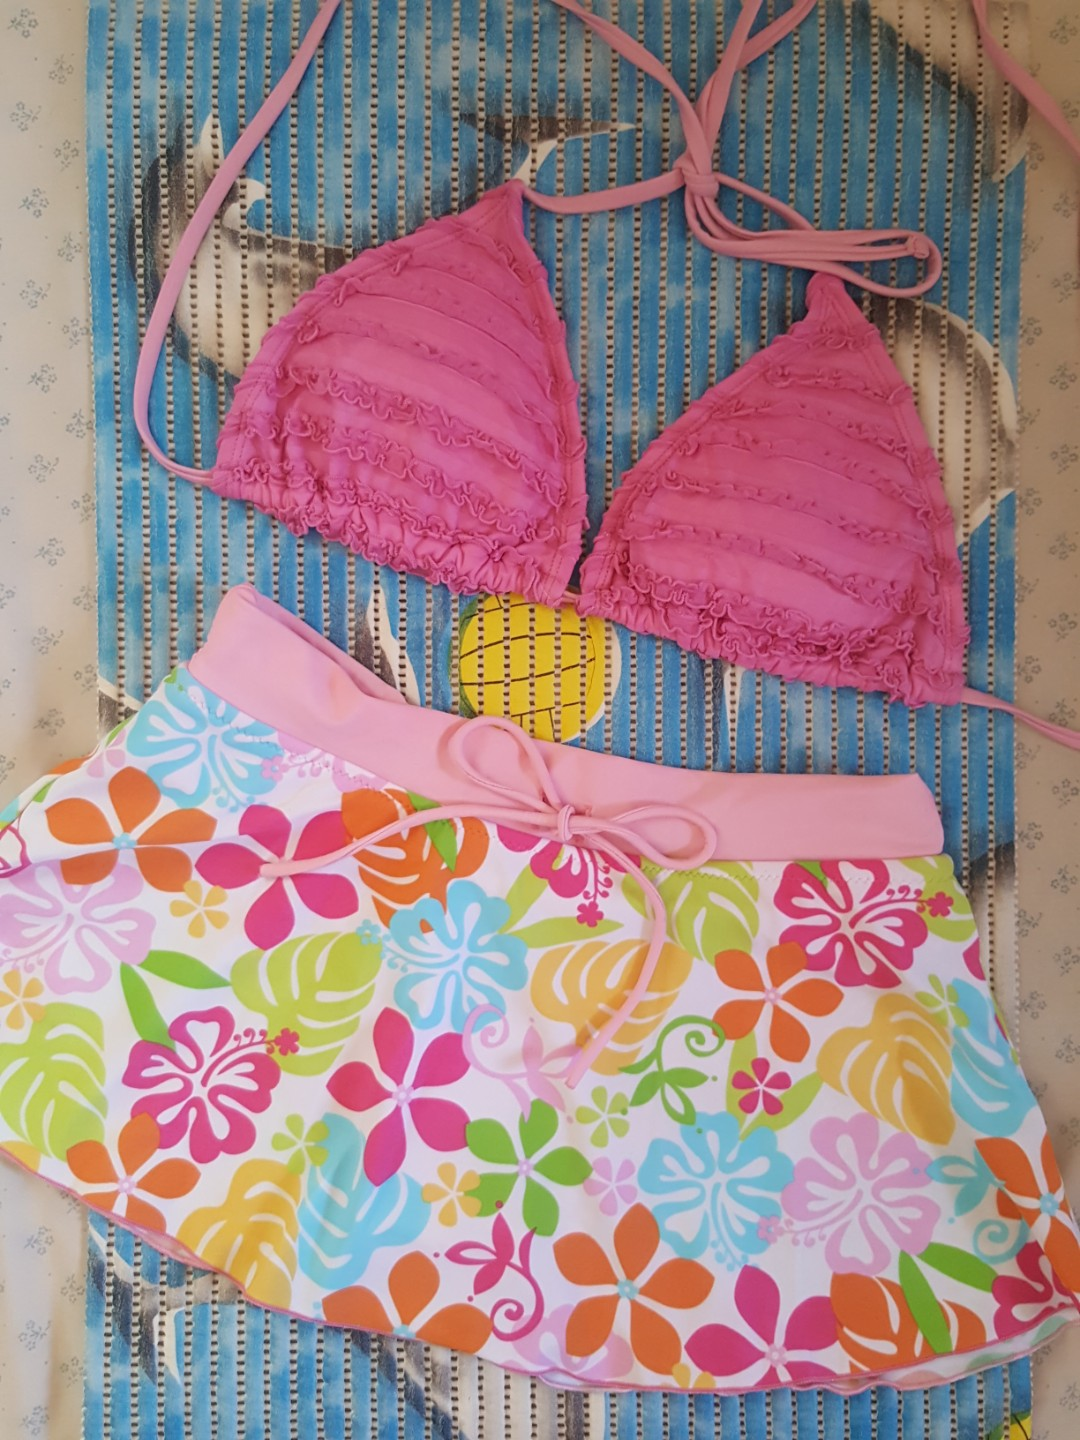 ☝️Swimsuit Pair (Triangle Bikini top & Floral Skirtini bottom)